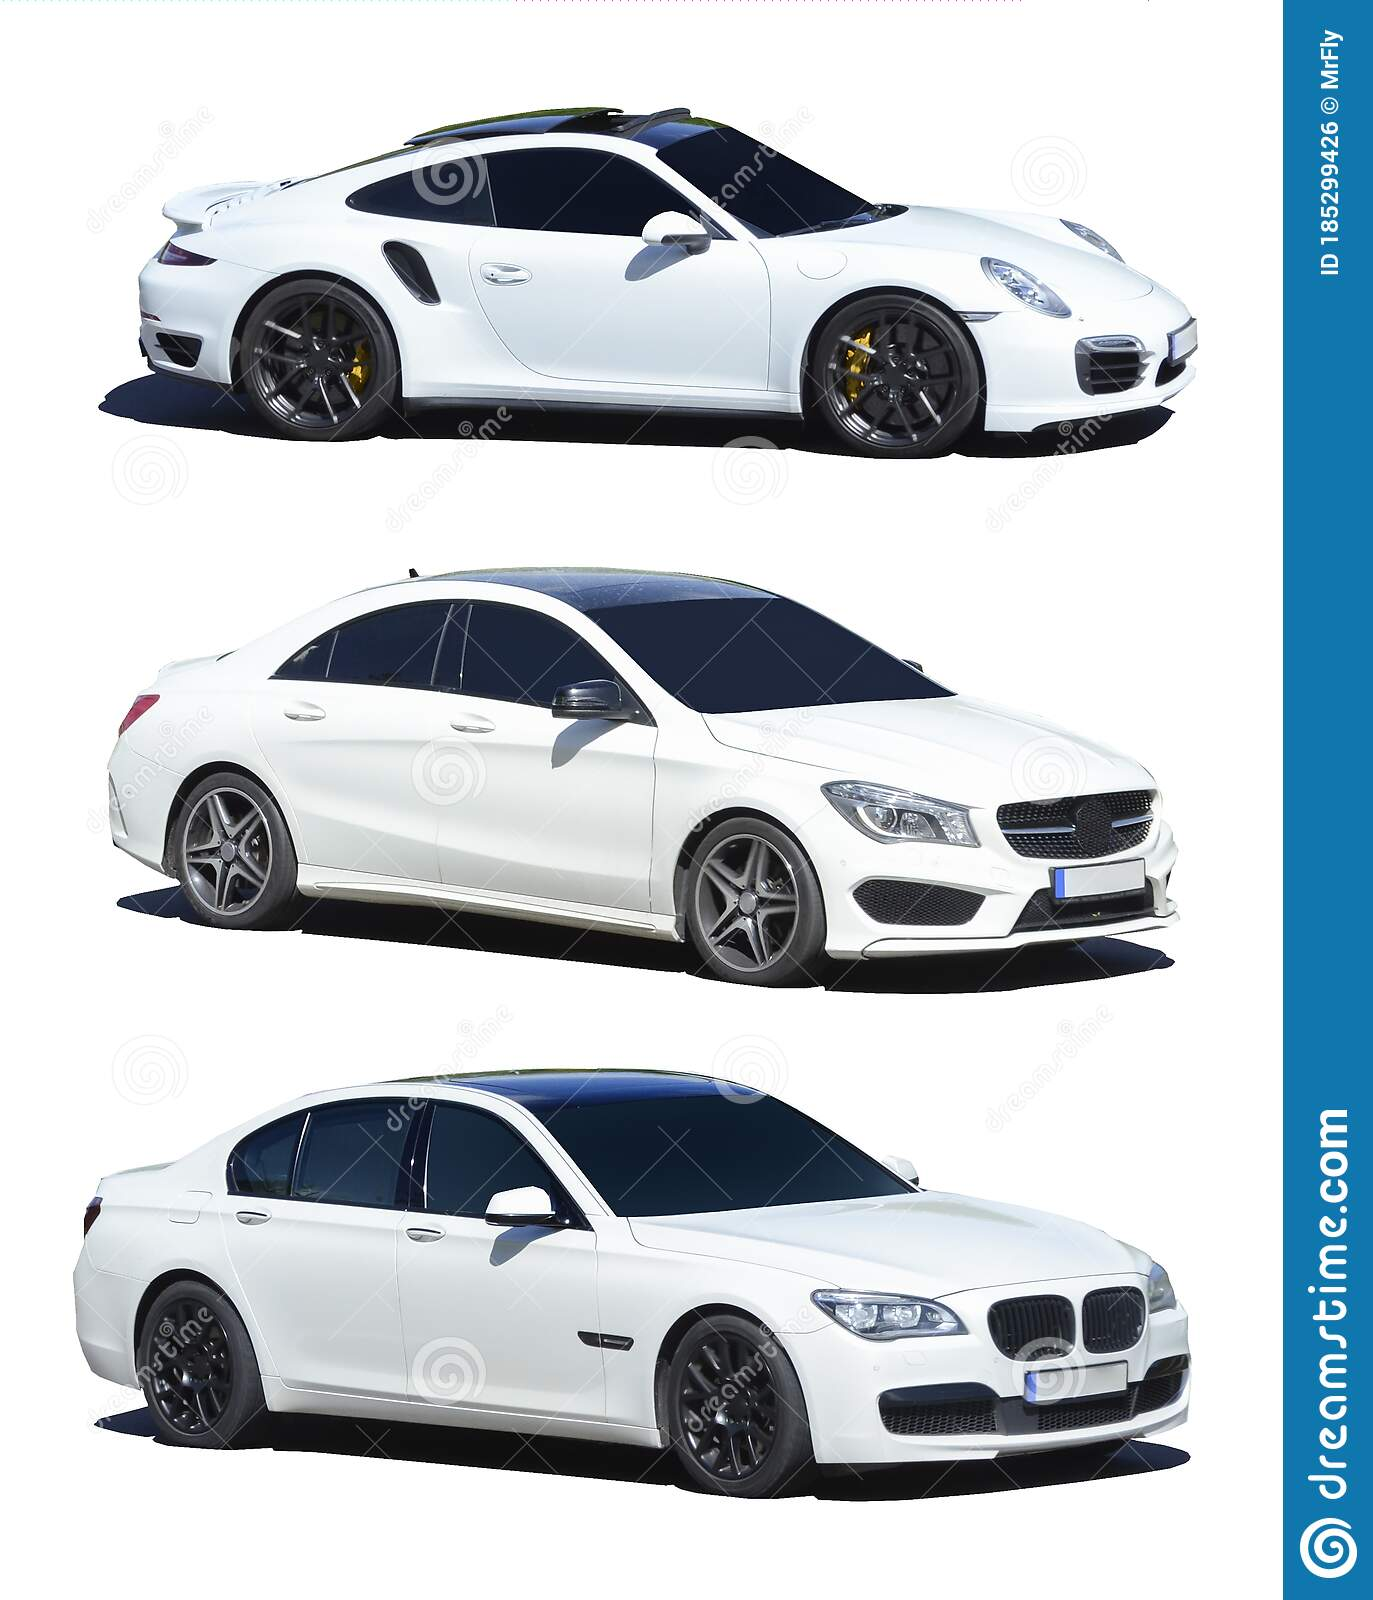 3 668 Luxury Cars White Background Photos Free Royalty Free Stock Photos From Dreamstime